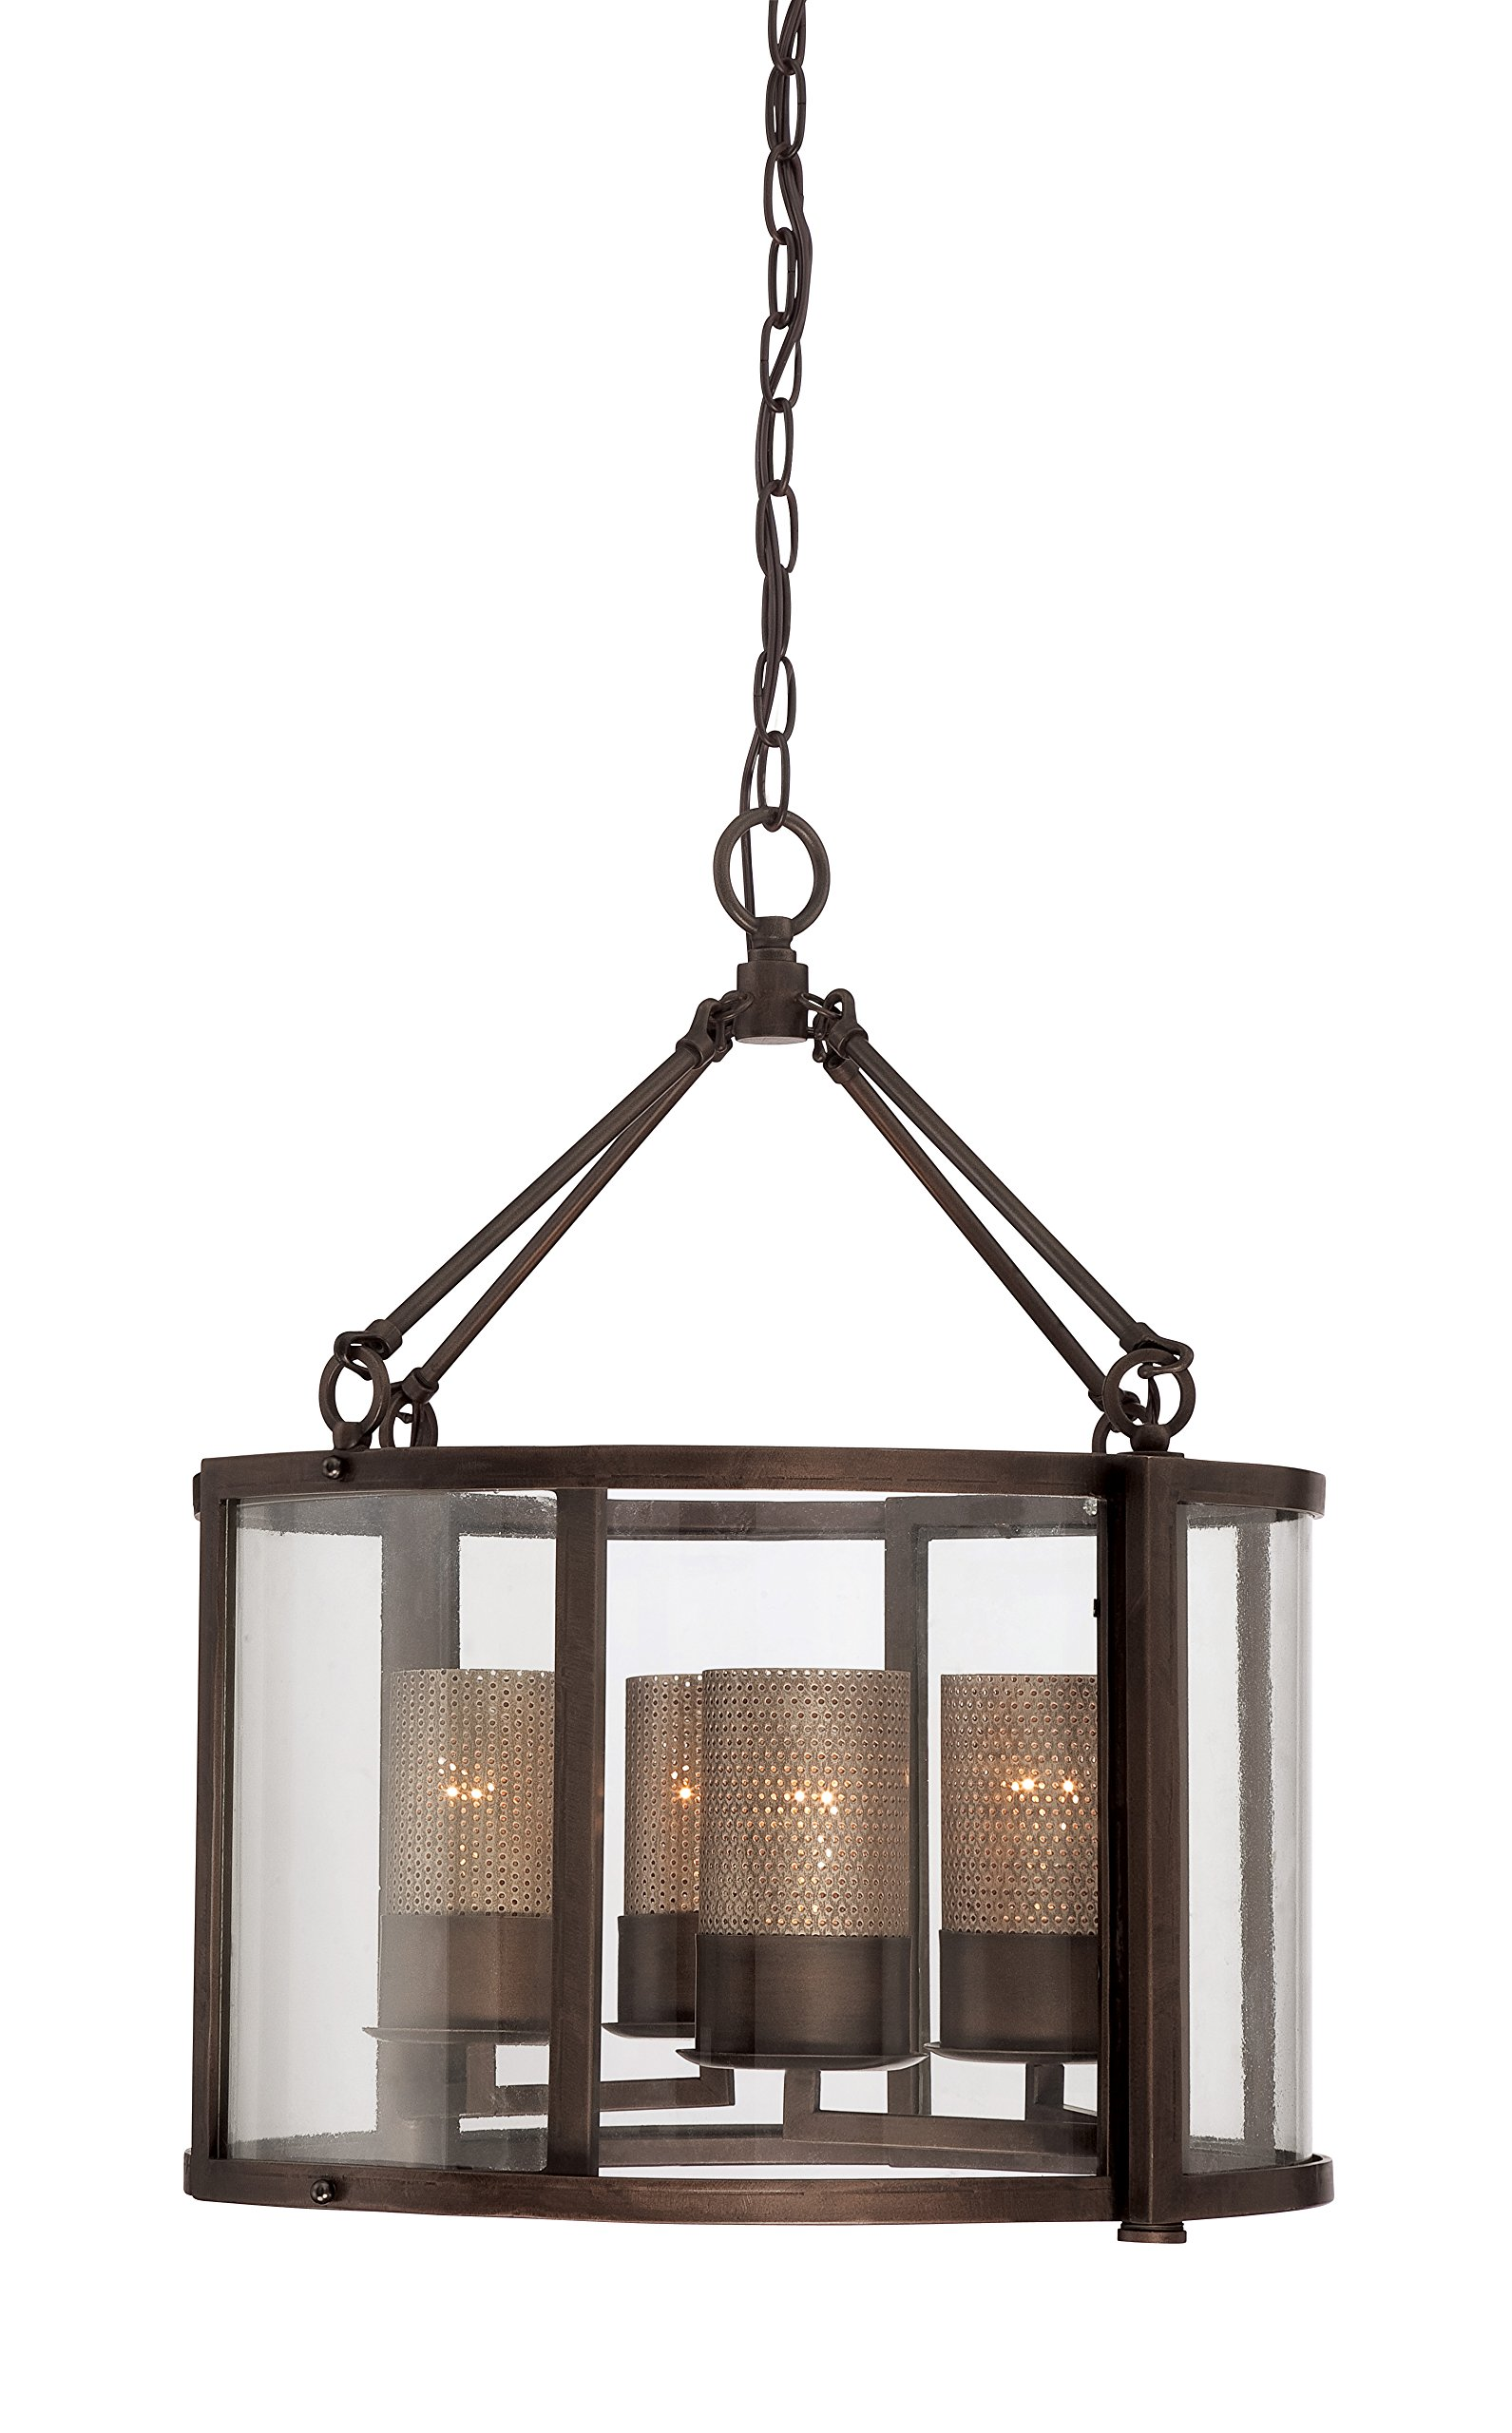 Jackson 4-Light Chandelier - Rustic Bronze Finish with Recycled Arched Window Pane Glass Shade